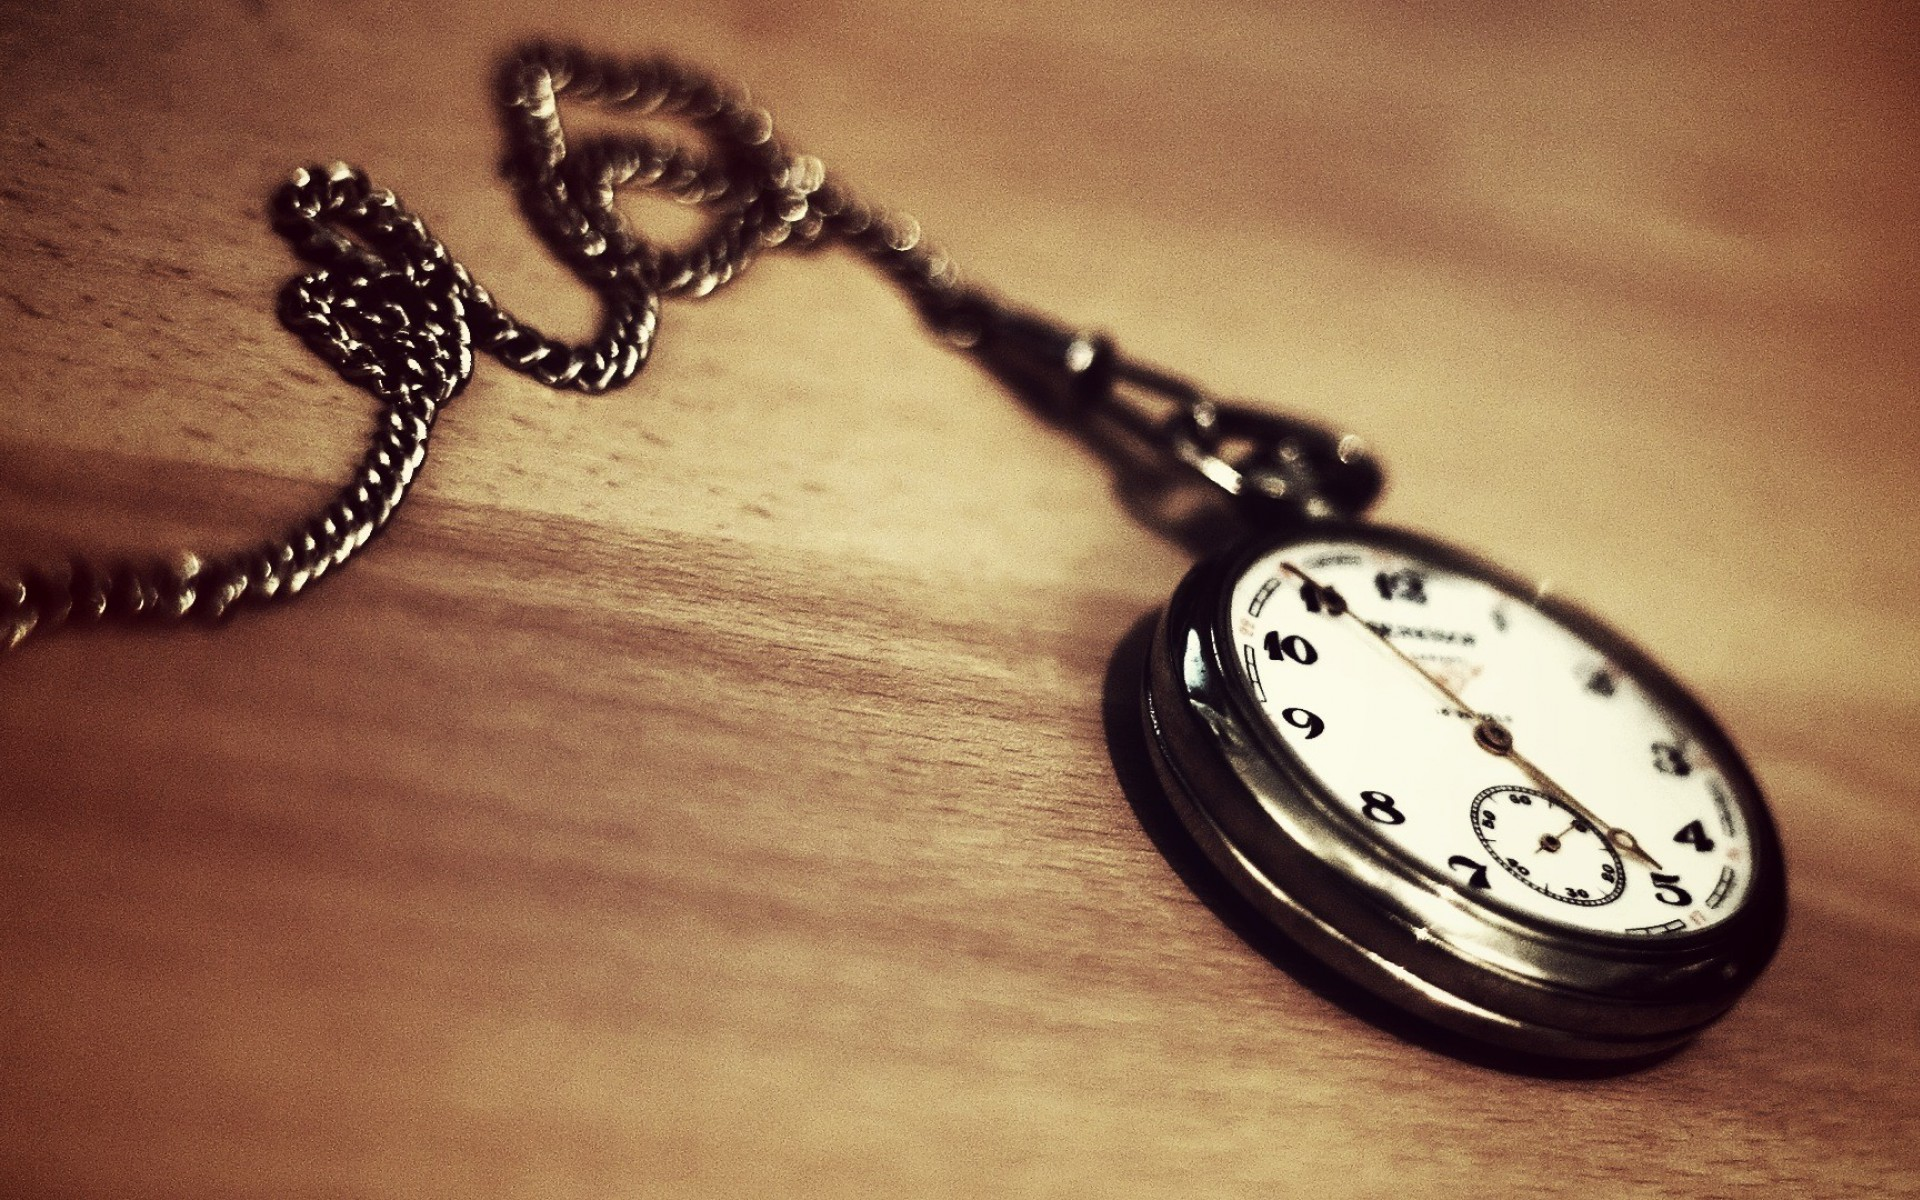 Pocket watch wallpaper  Vintage Pocket Watch Wallpaper 45081 1920x1200 px ~ HDWallSource.com